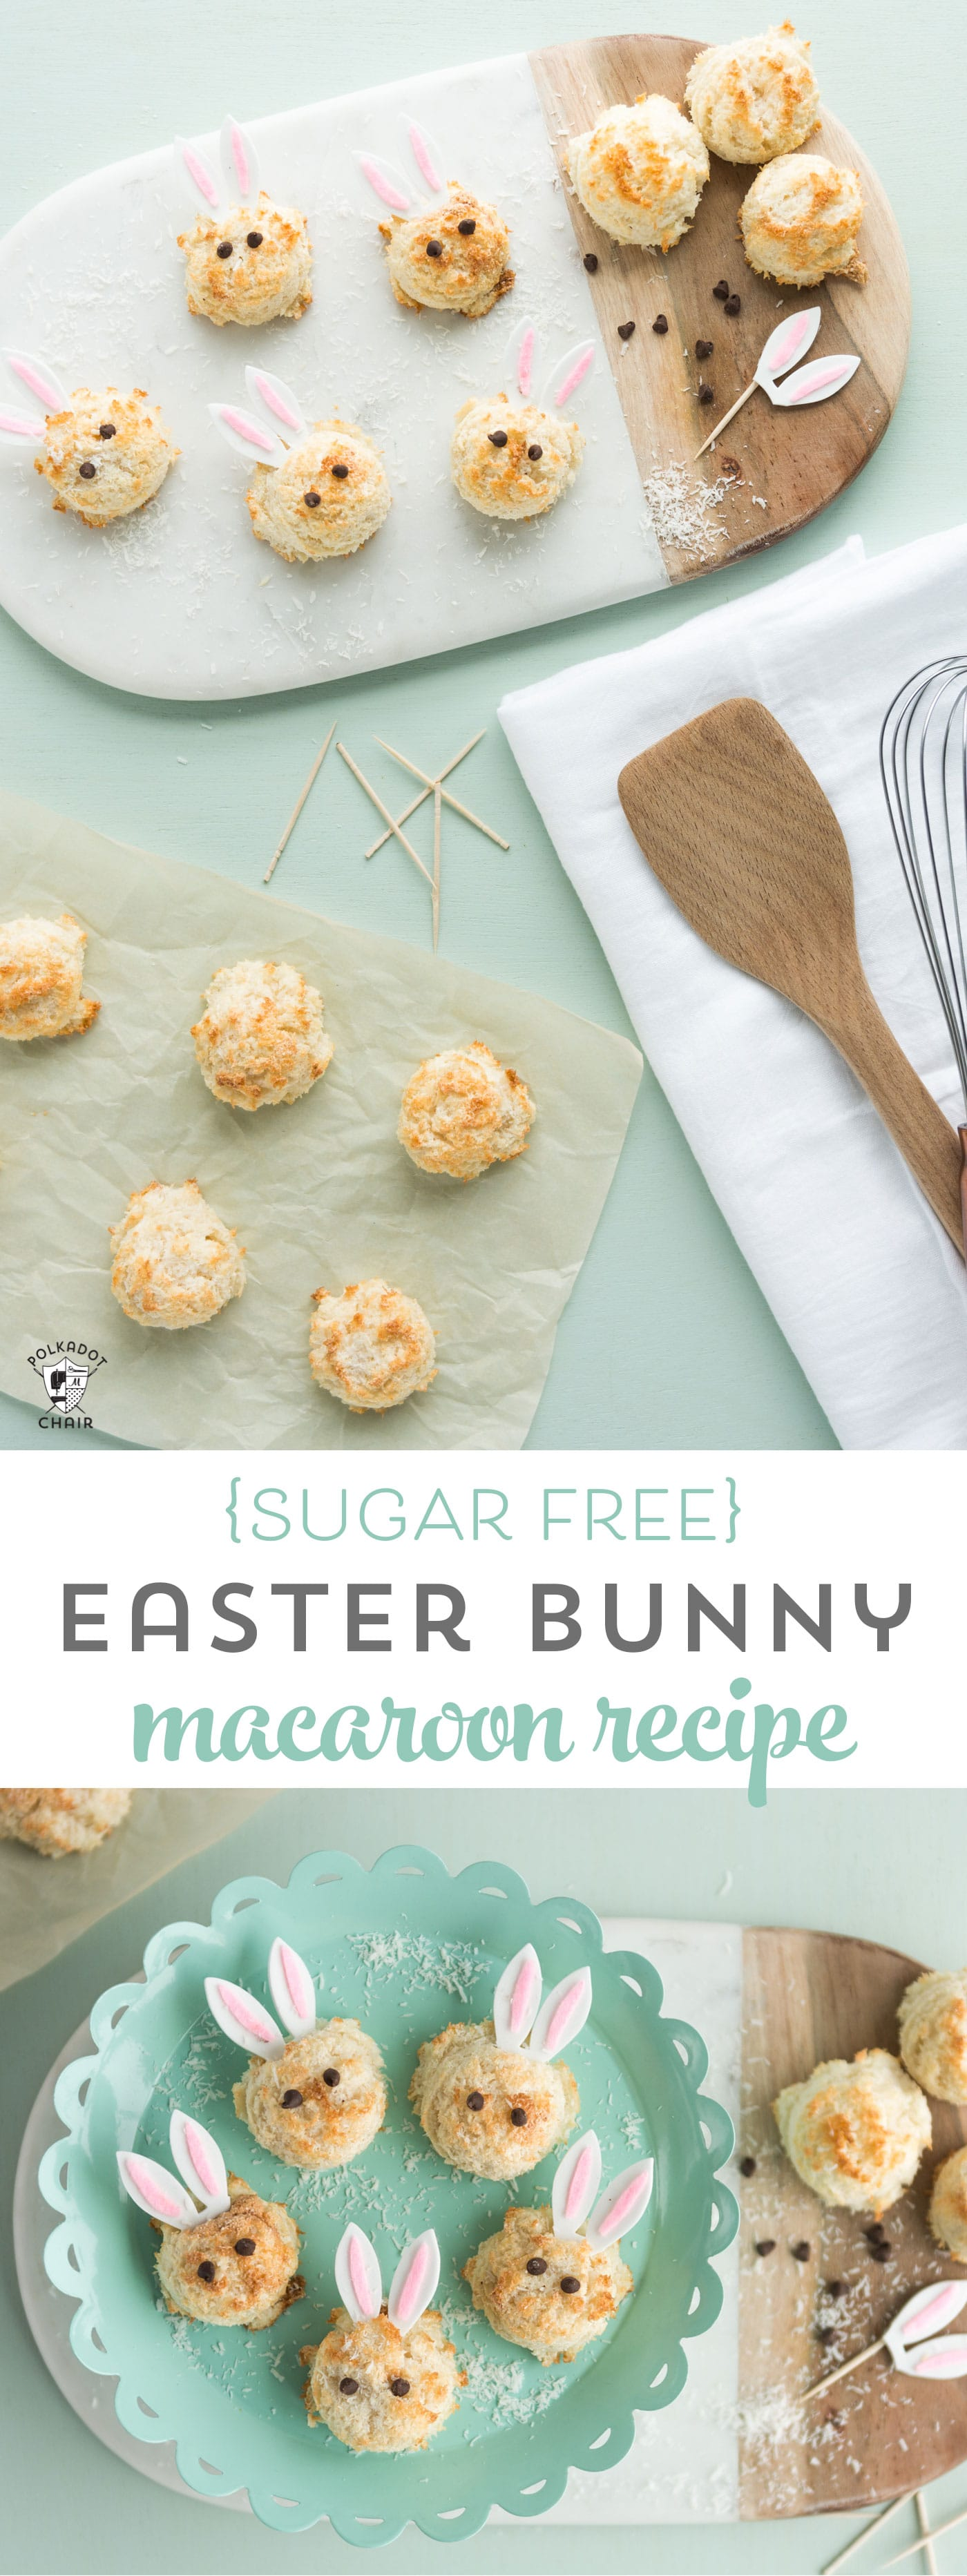 Easter Bunny Sugar Free Coconut Macaroon Recipe  The